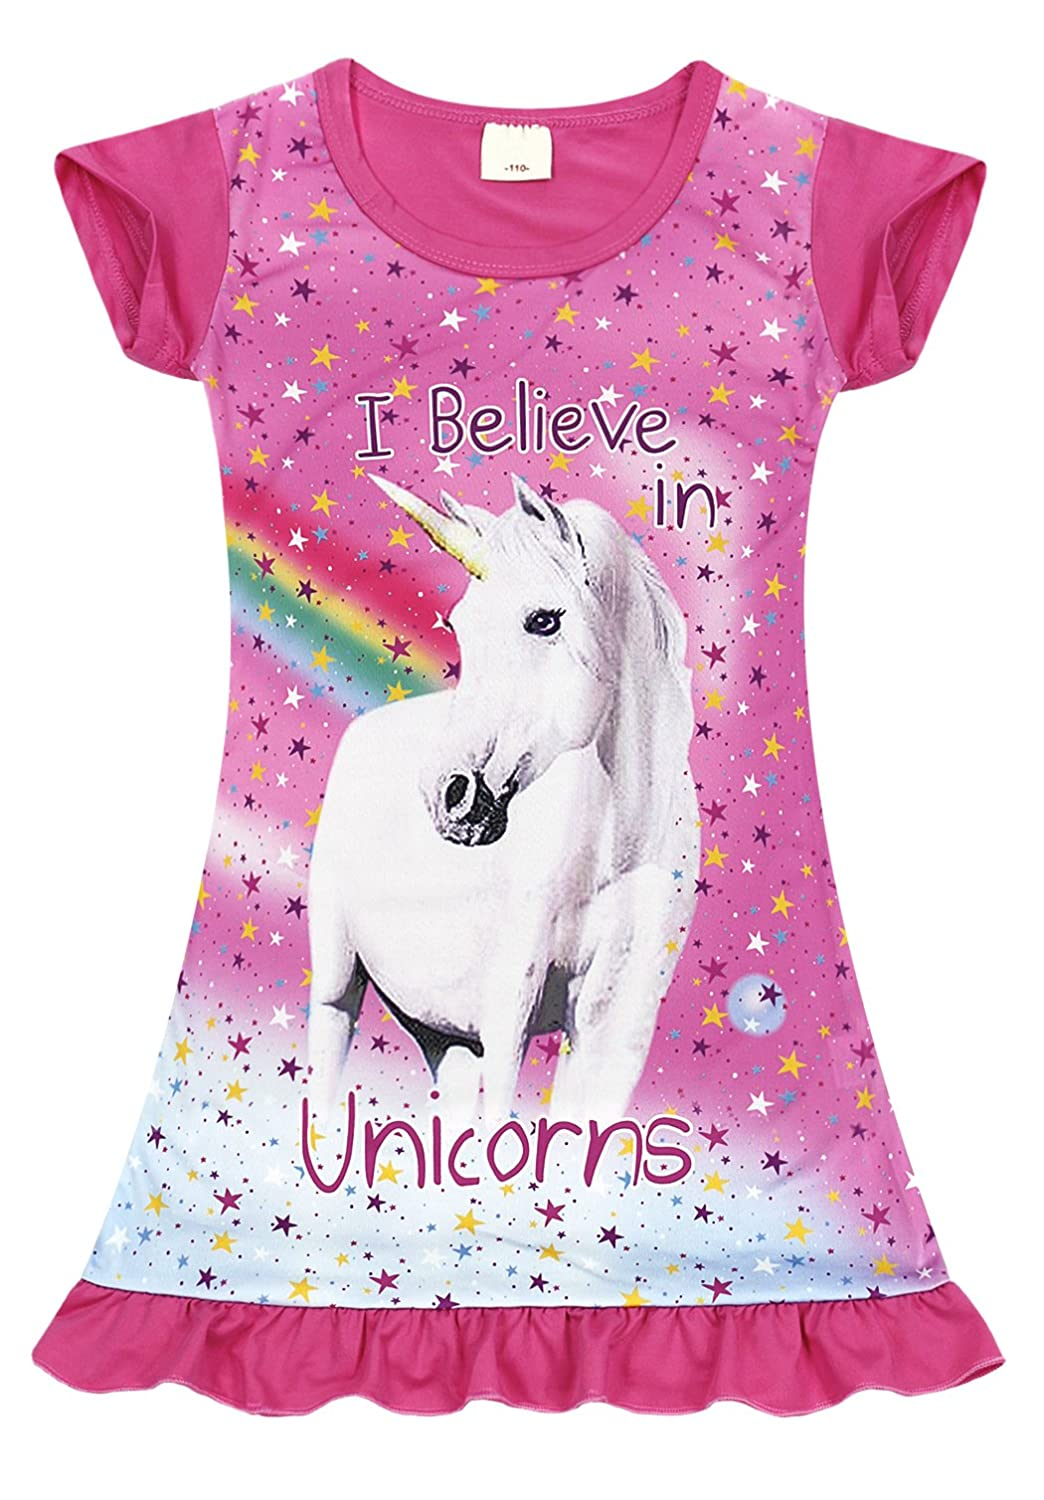 Jurebecia Girls Unicorn Nightgown Sleepwear Night Dress Casual Dress 2-10 Years